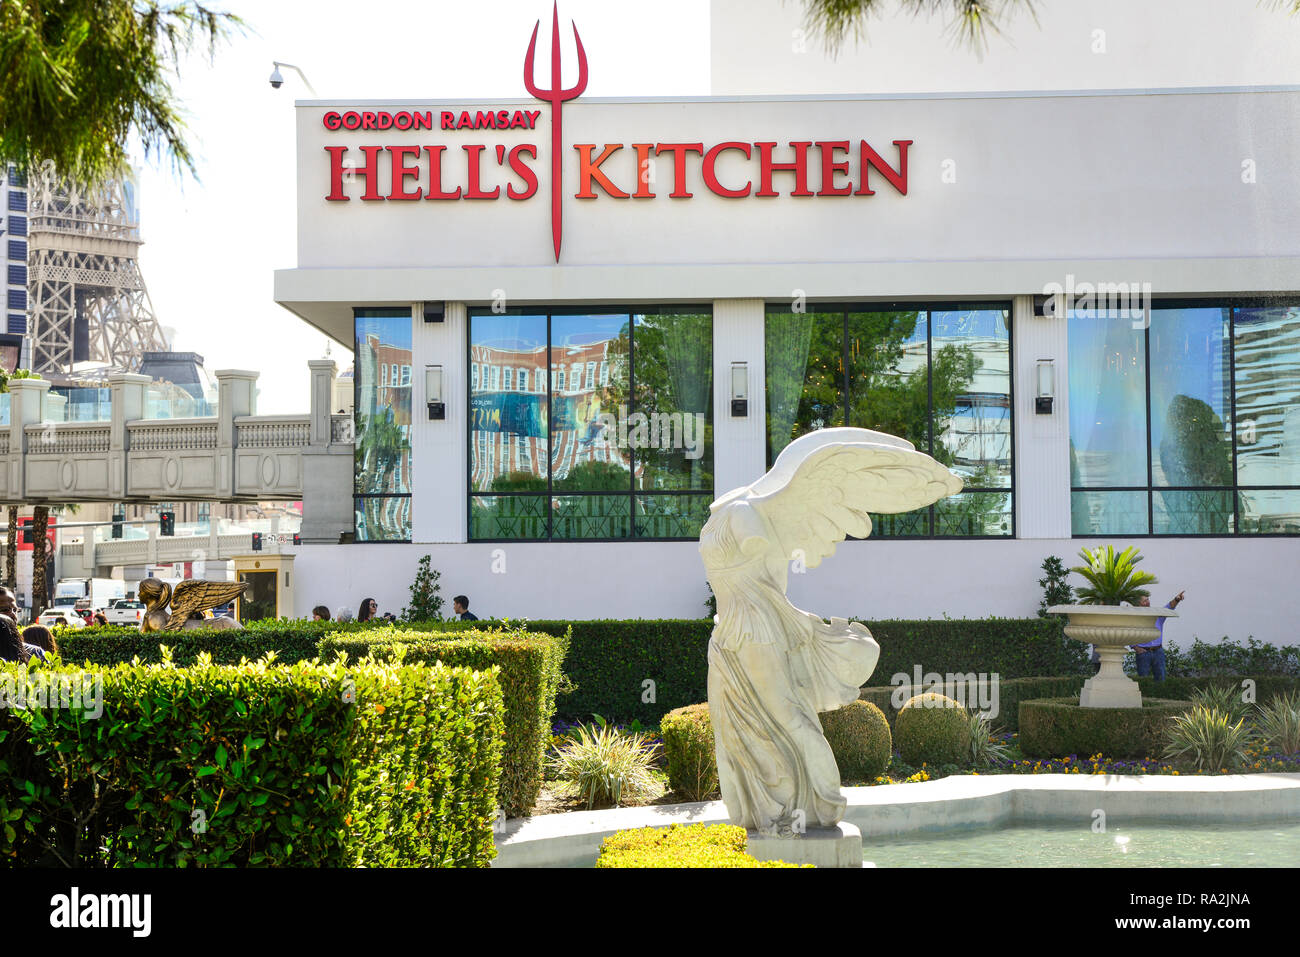 Astounding Headless Roman Winged Statue Facing The Las Vegas Strip At Interior Design Ideas Helimdqseriescom